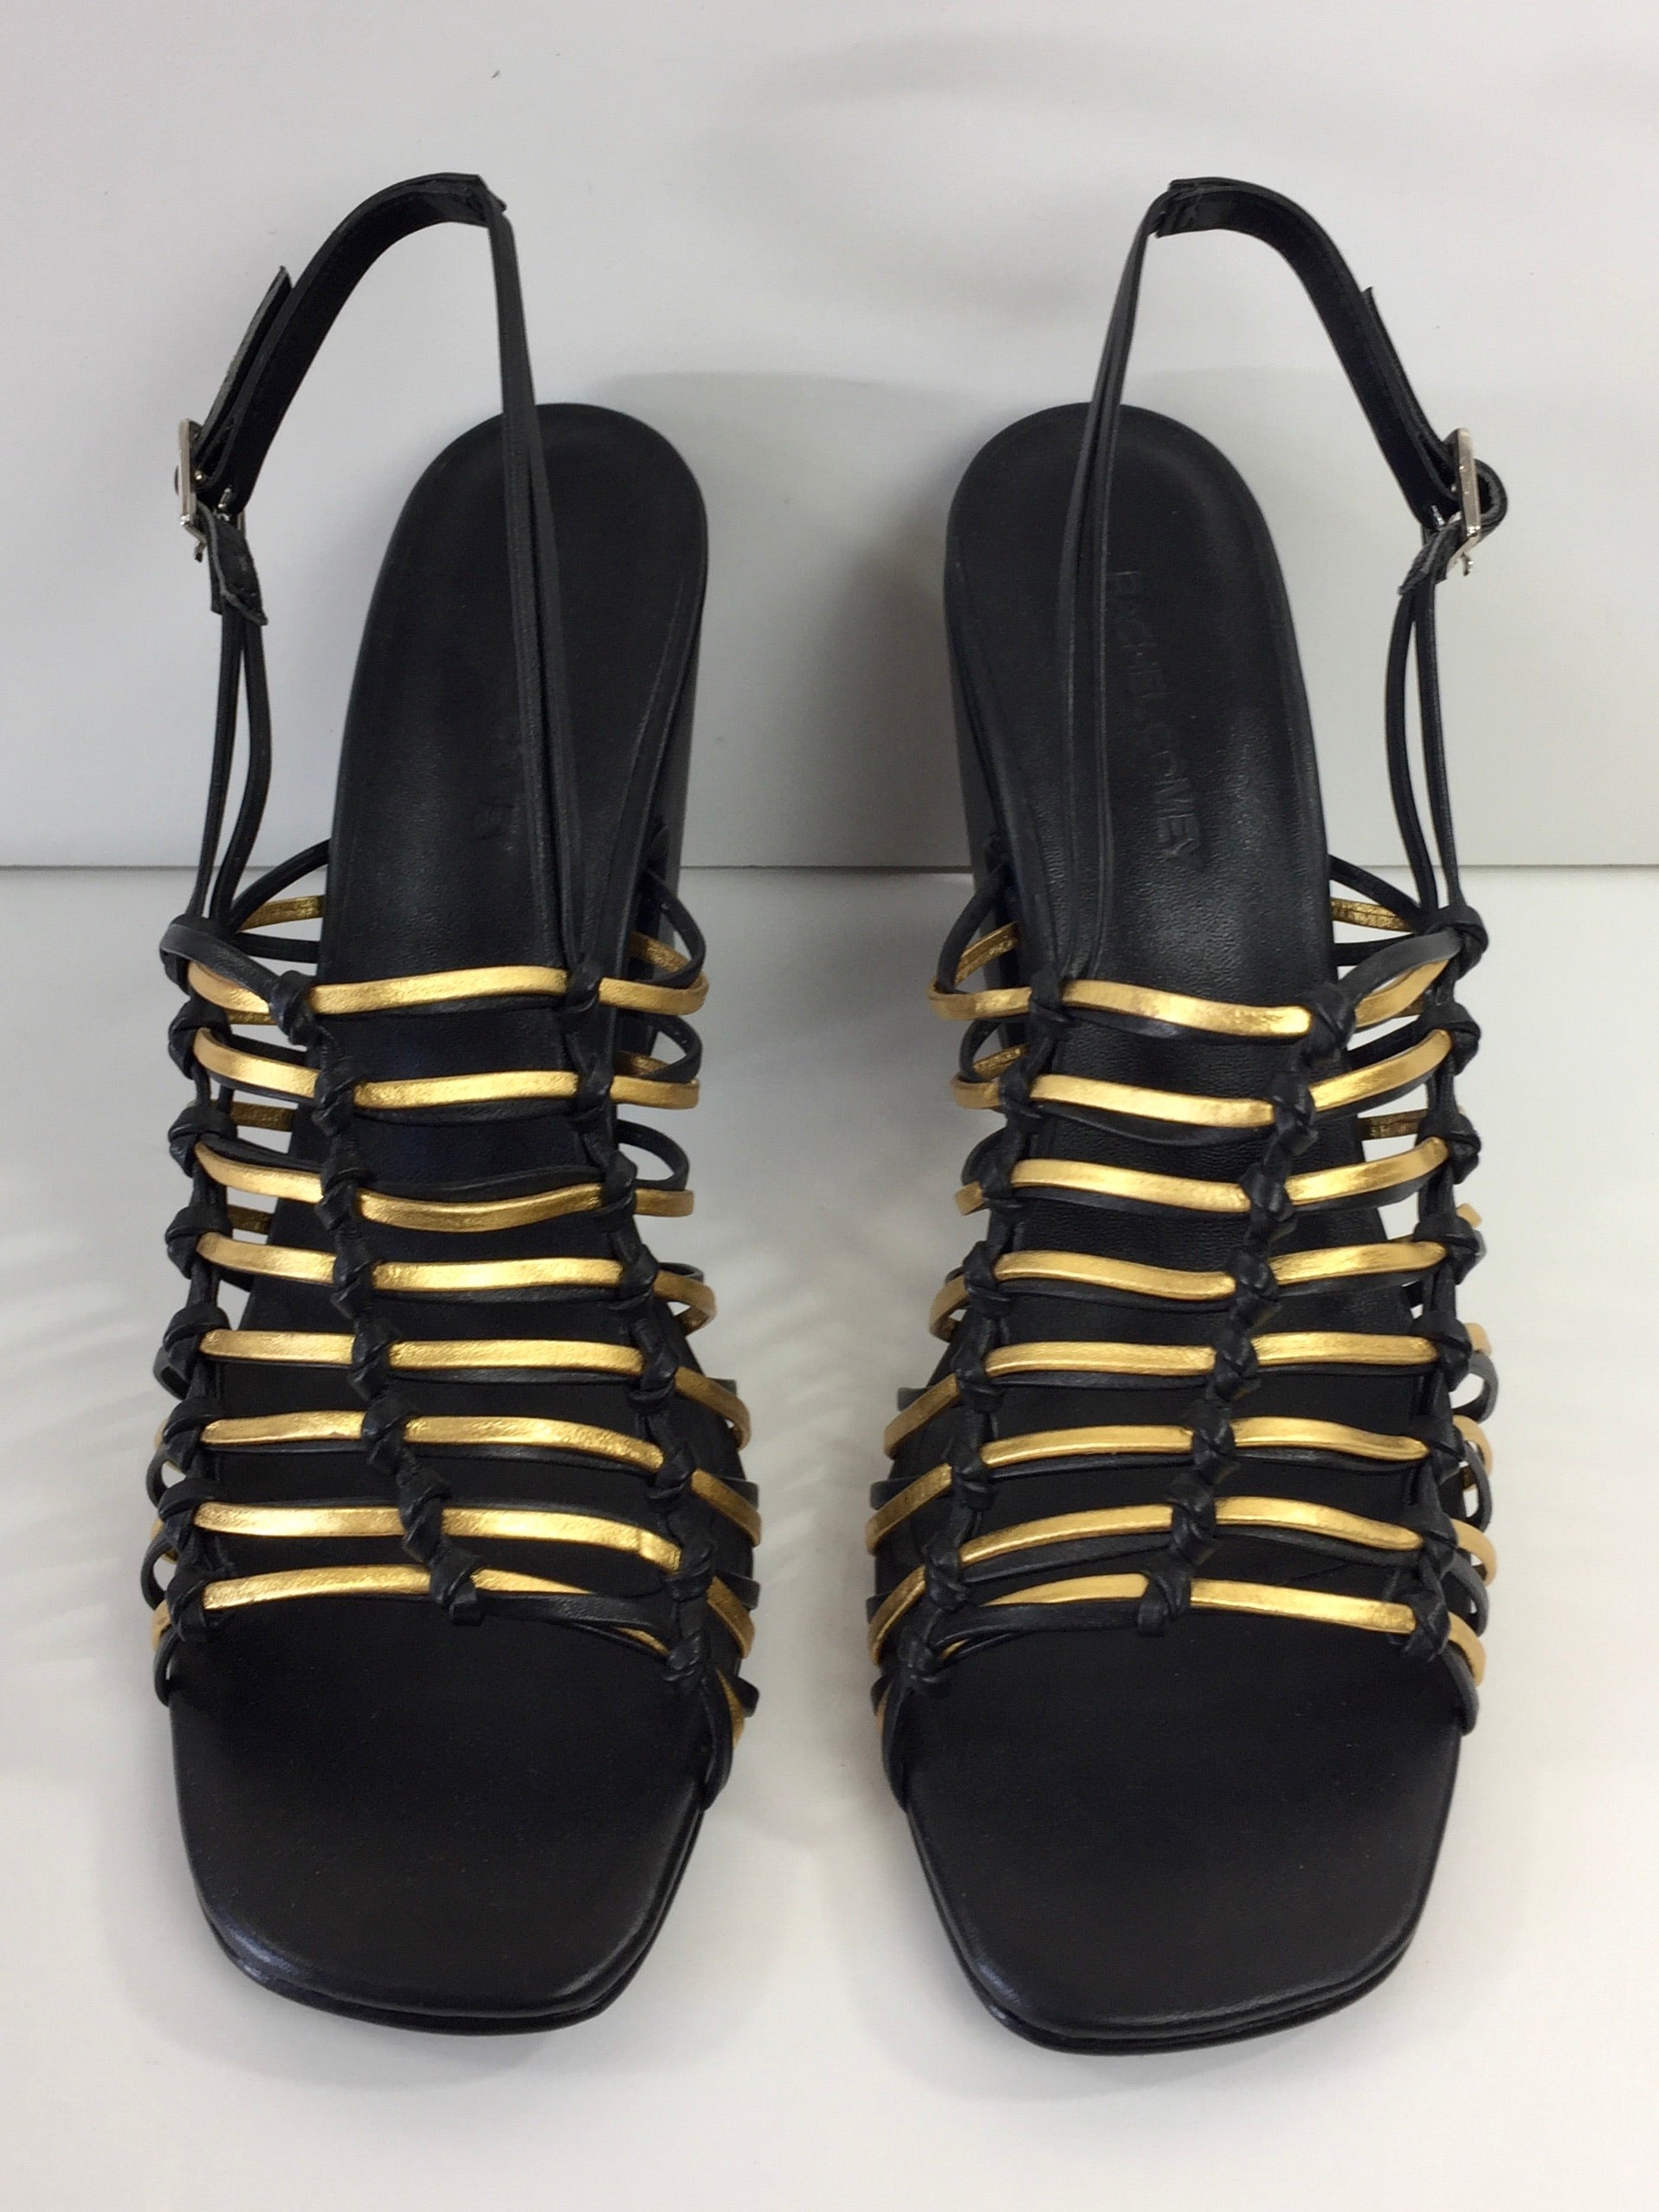 Black and Gold Knot Sandal